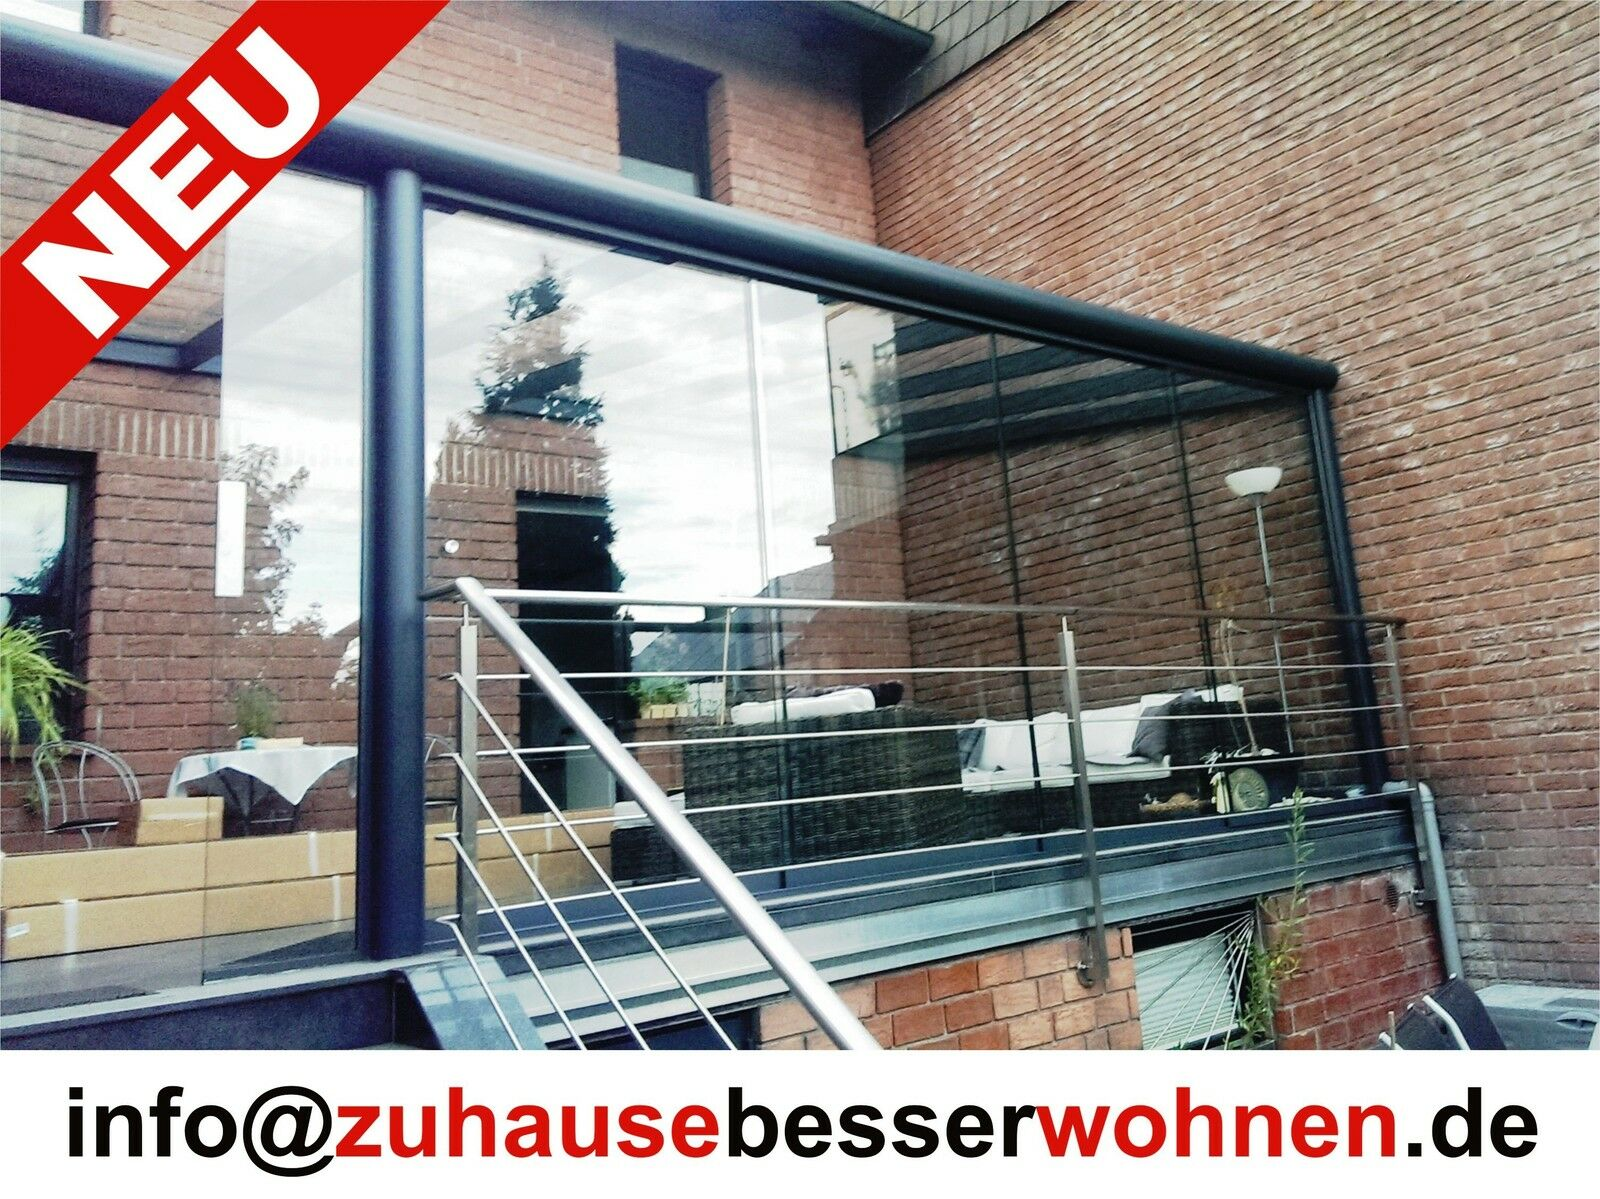 terrassen berdachung carport berdachung aluminium terrassendach vsg glas 3x3m eur. Black Bedroom Furniture Sets. Home Design Ideas